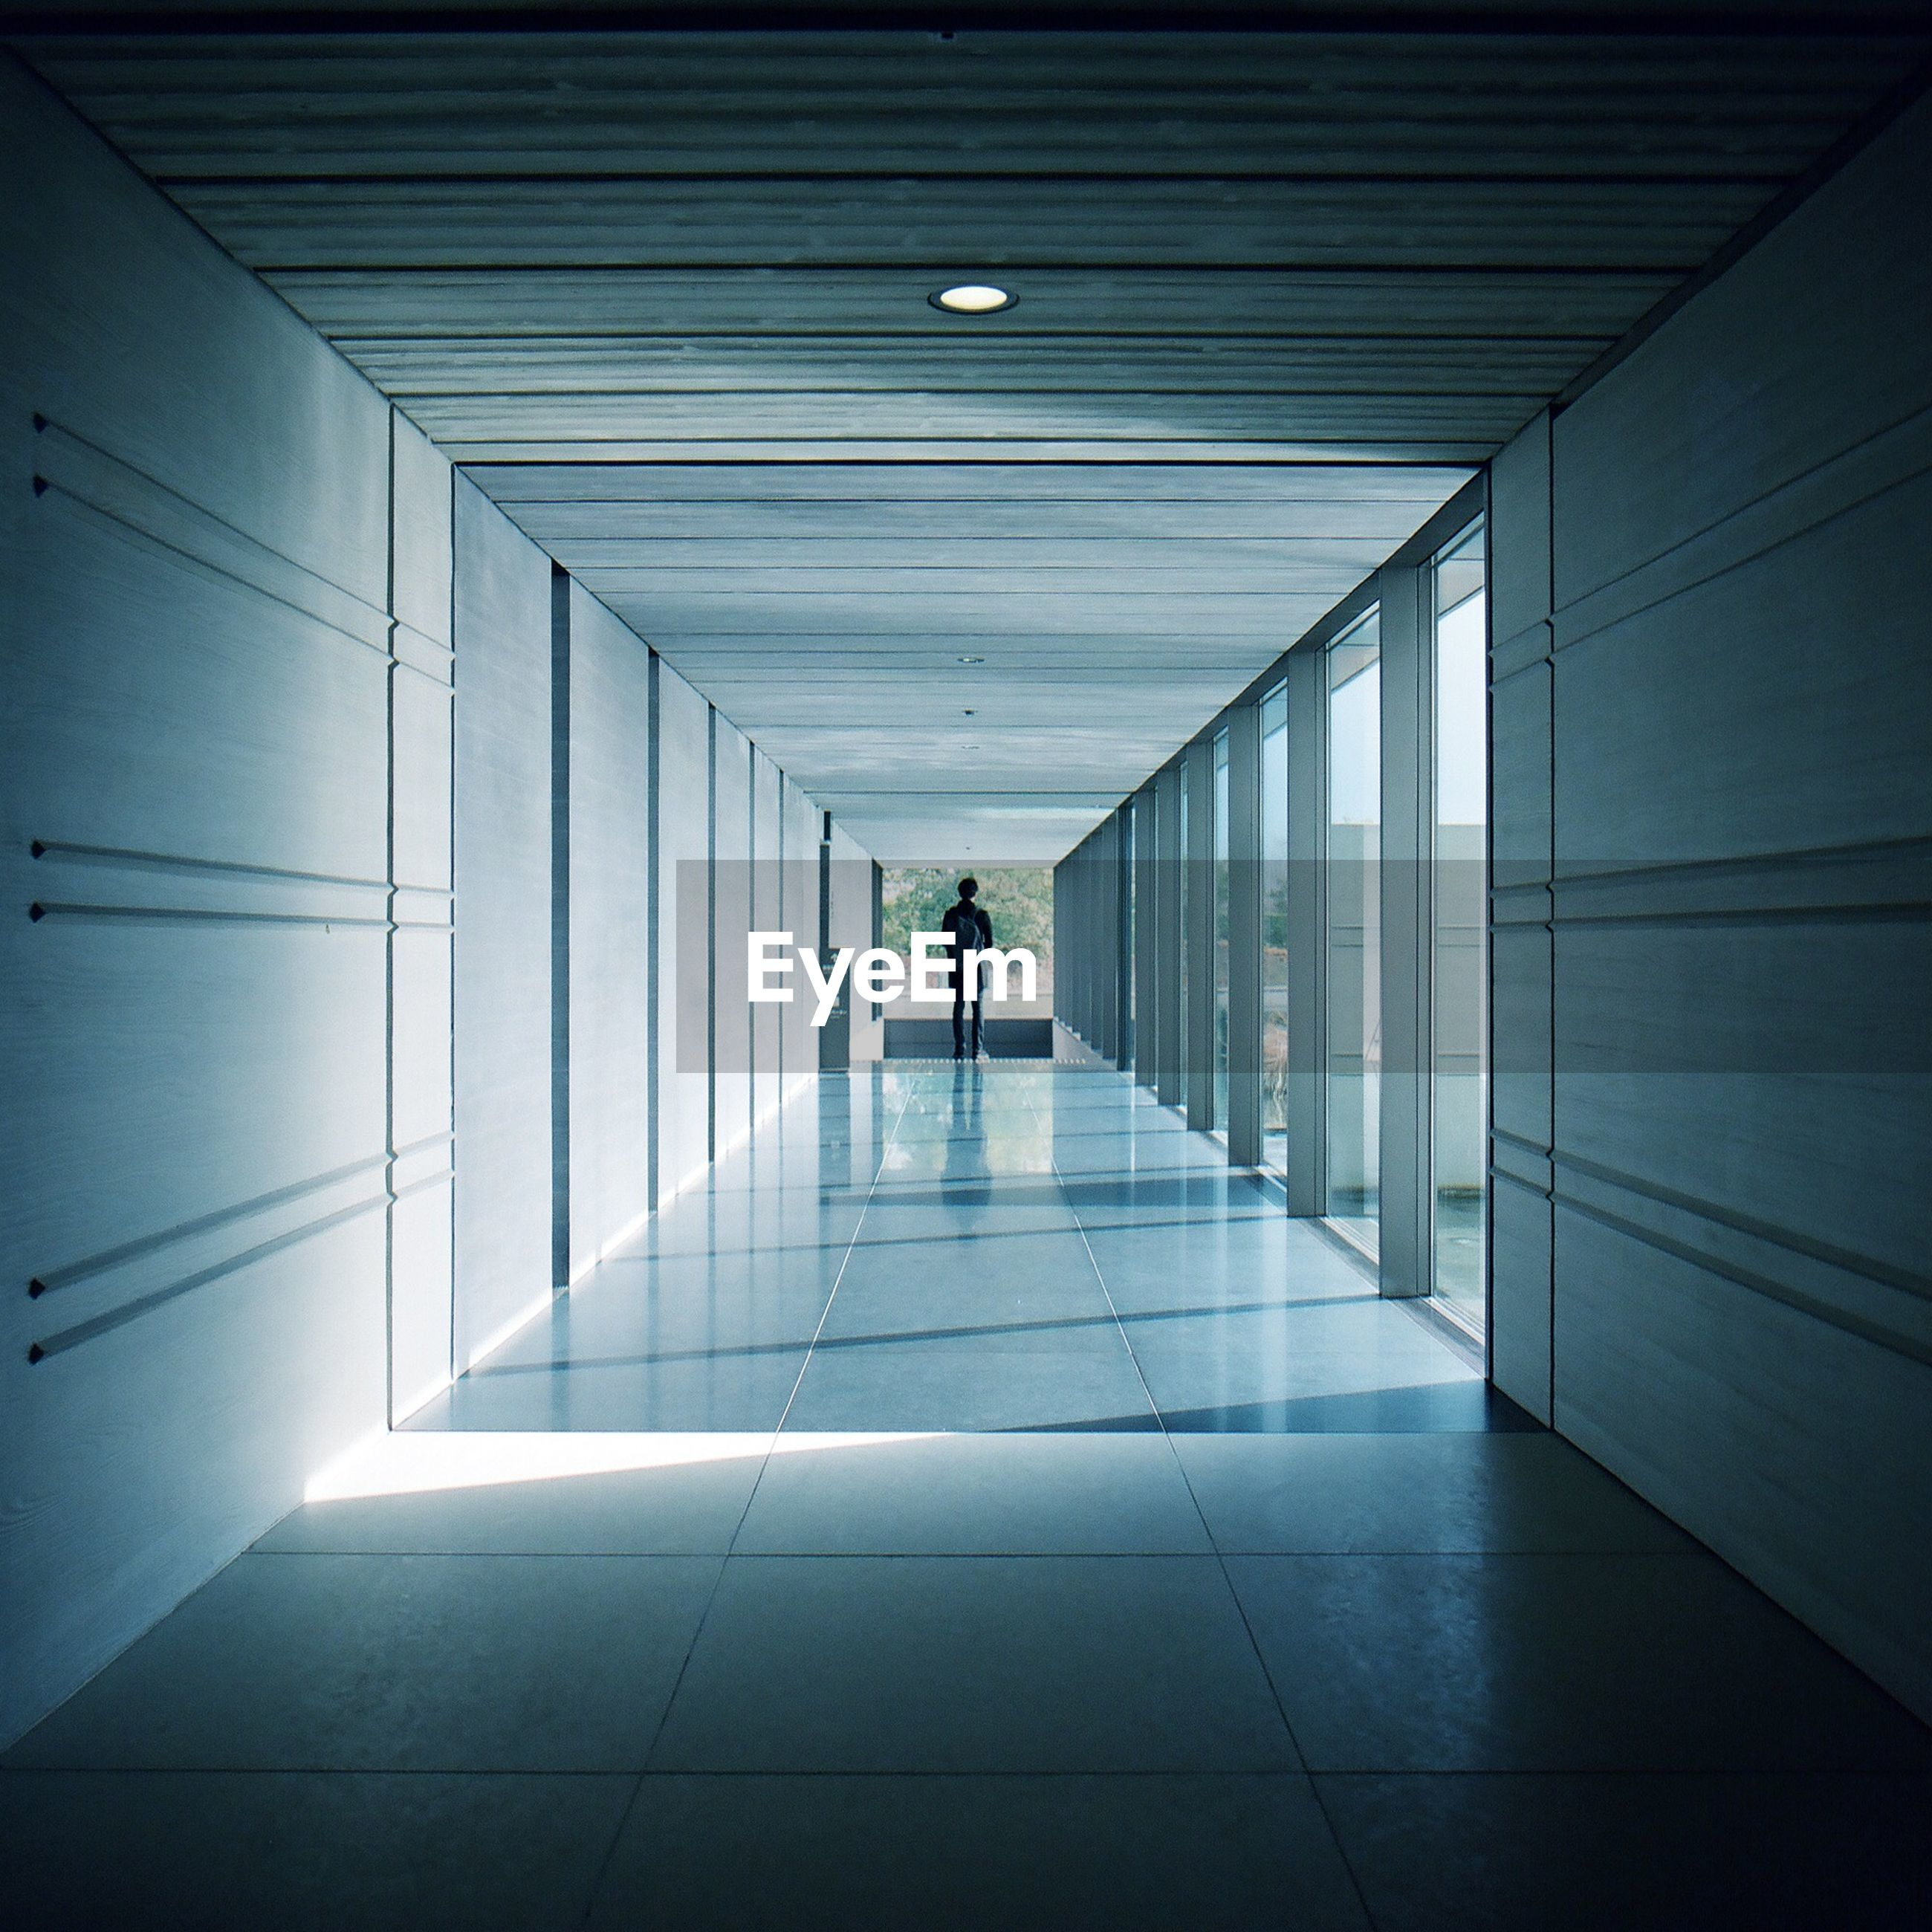 Distant view of man standing at end of corridor in building